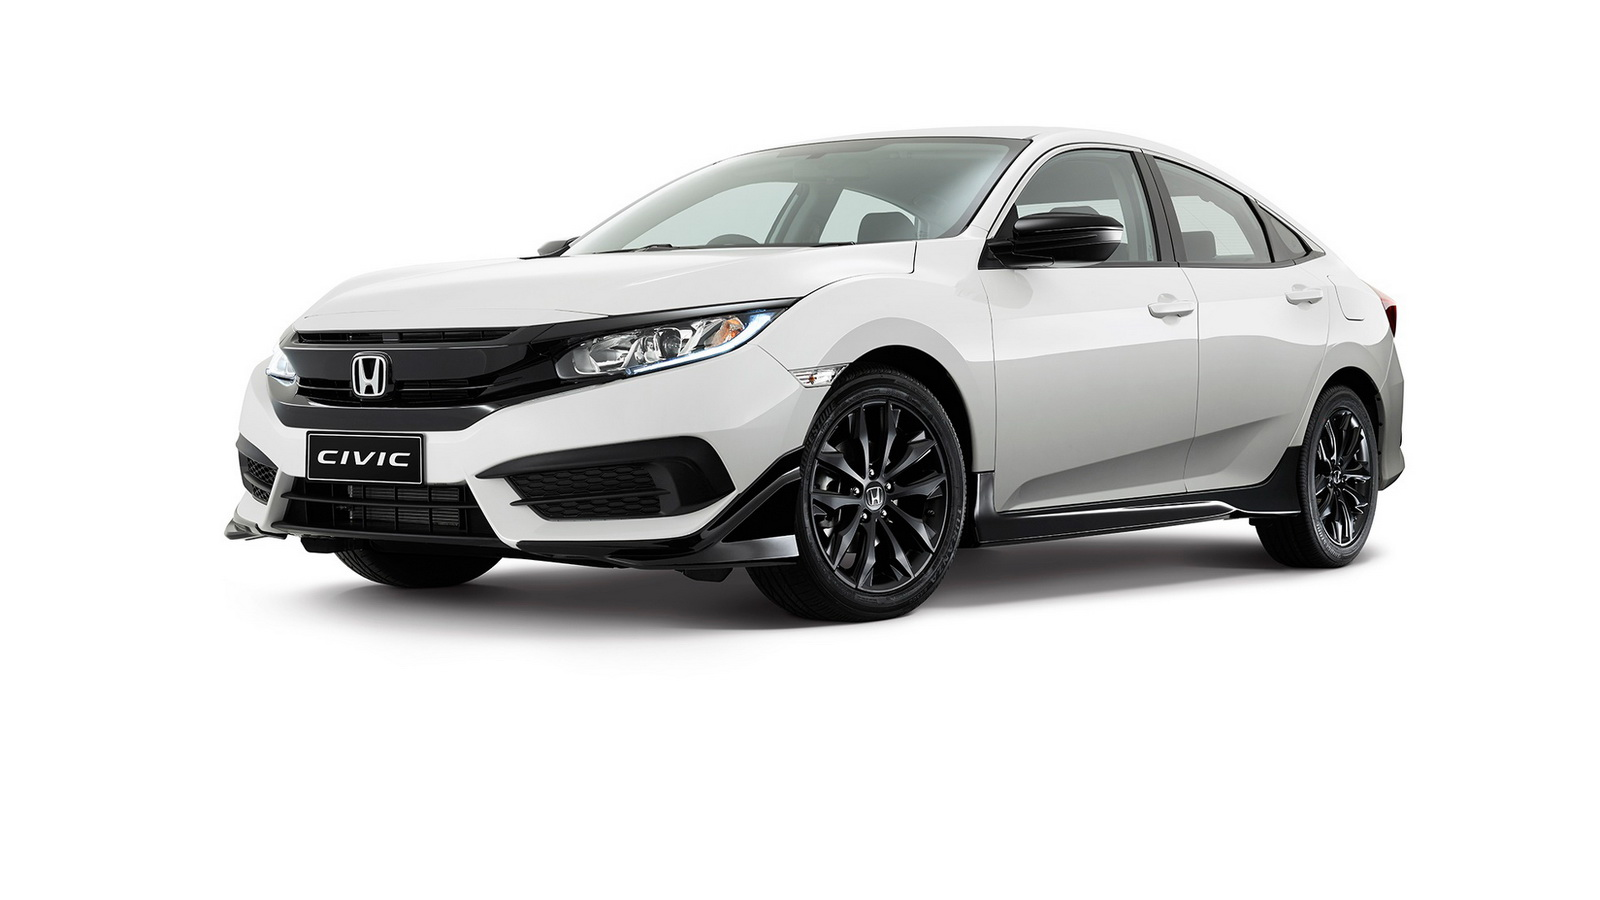 2016-honda-civic-black-pack-australia-1